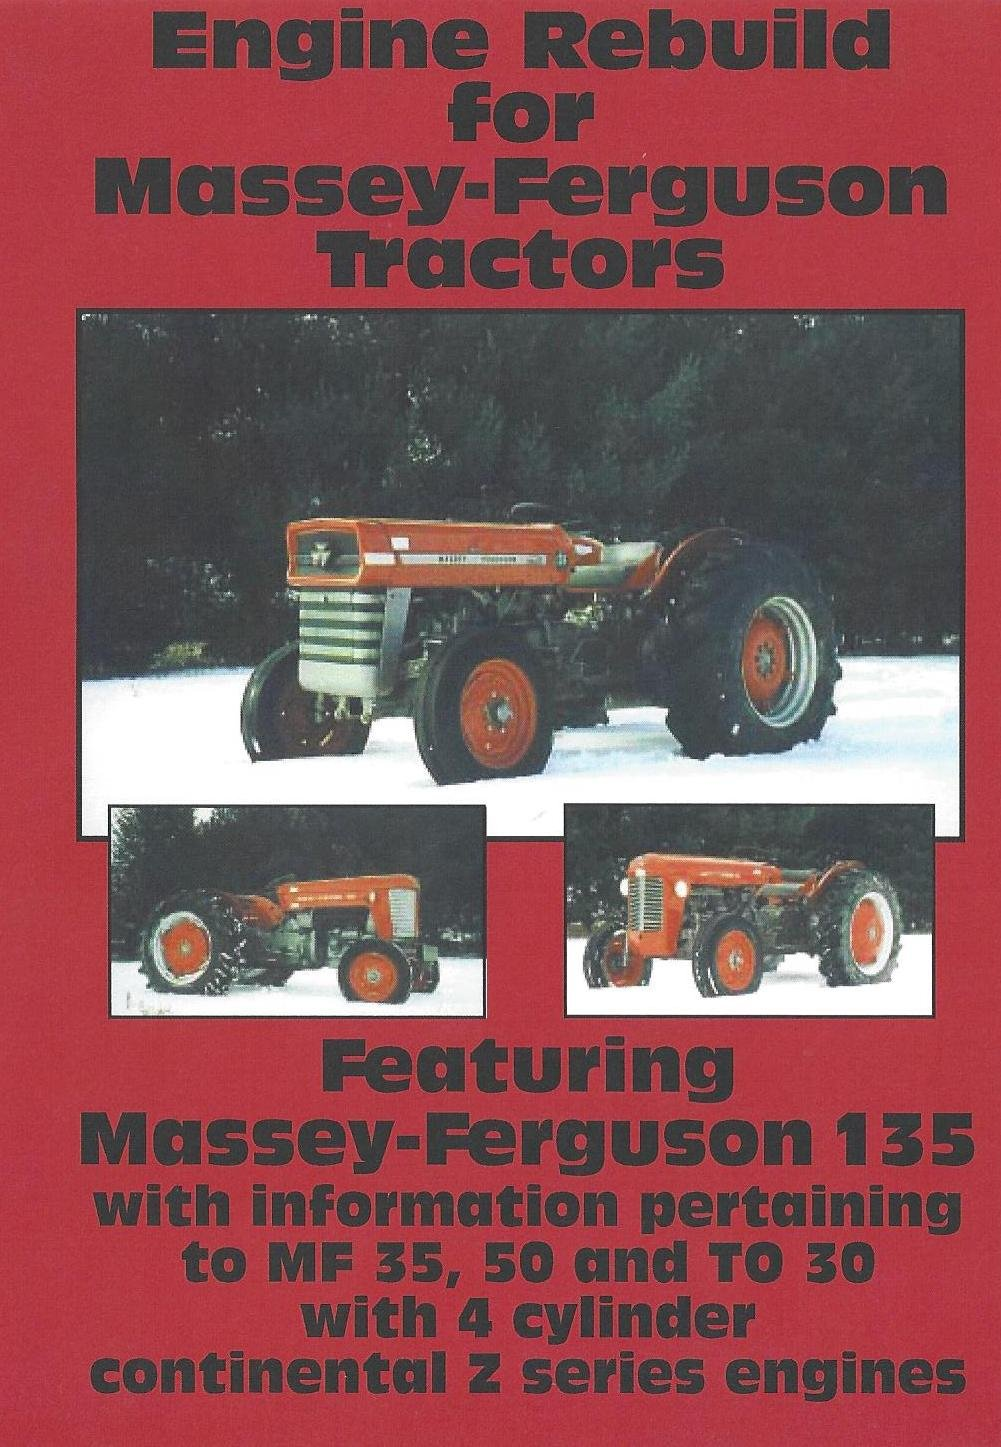 Amazon.com: Engine Rebuild for Massey-Ferguson Tractors Featuring Massey- Ferguson 135 with Information Pertaining To MF 35, 50 and TO 30 with 4  cylinder ...